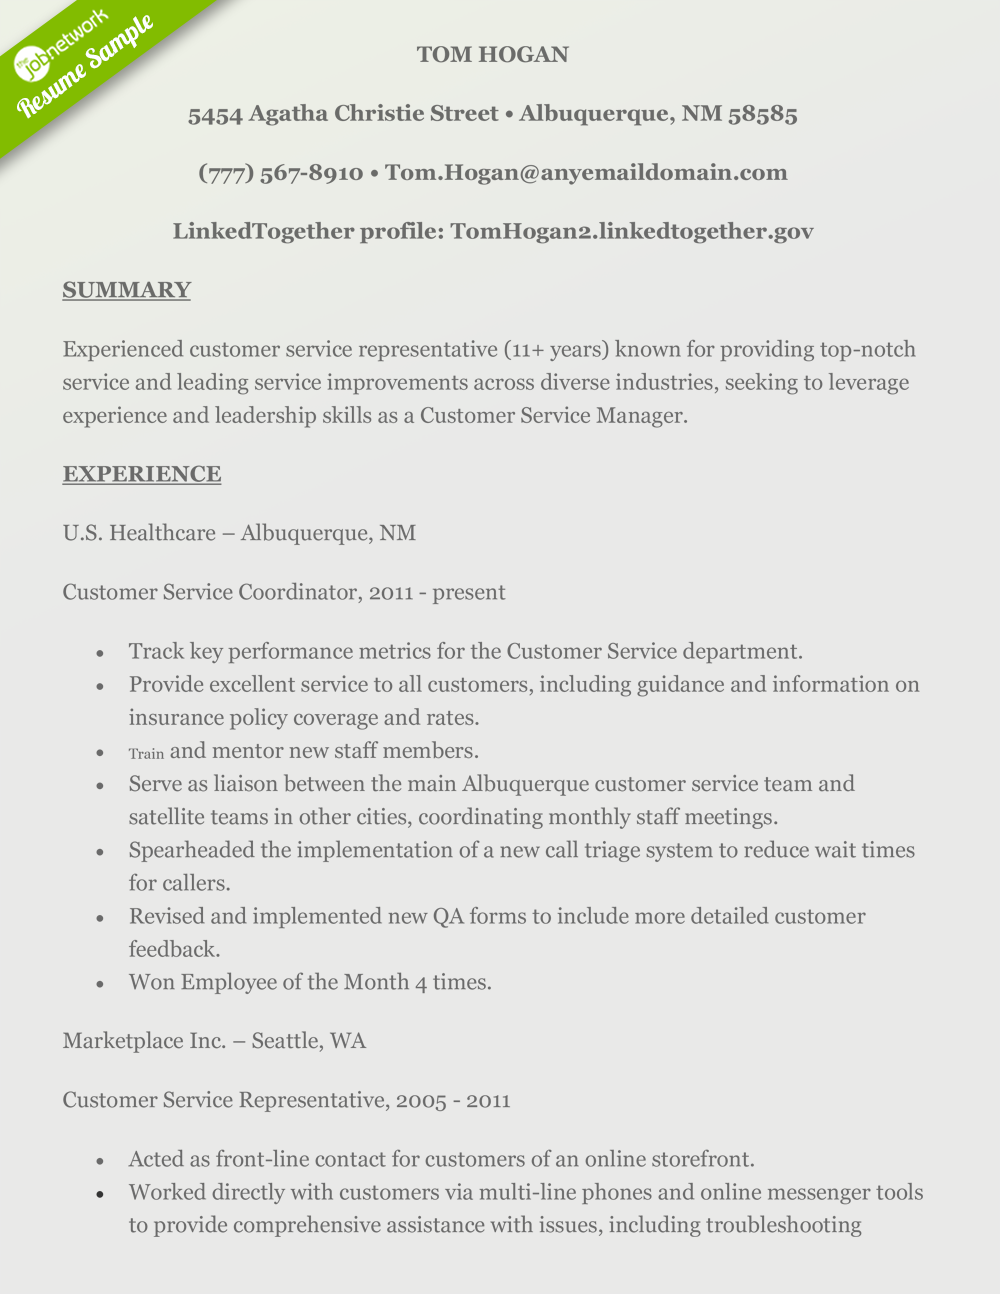 resume Customer Service Resume Examples to craft a perfect customer service resume using examples tom hogan resume